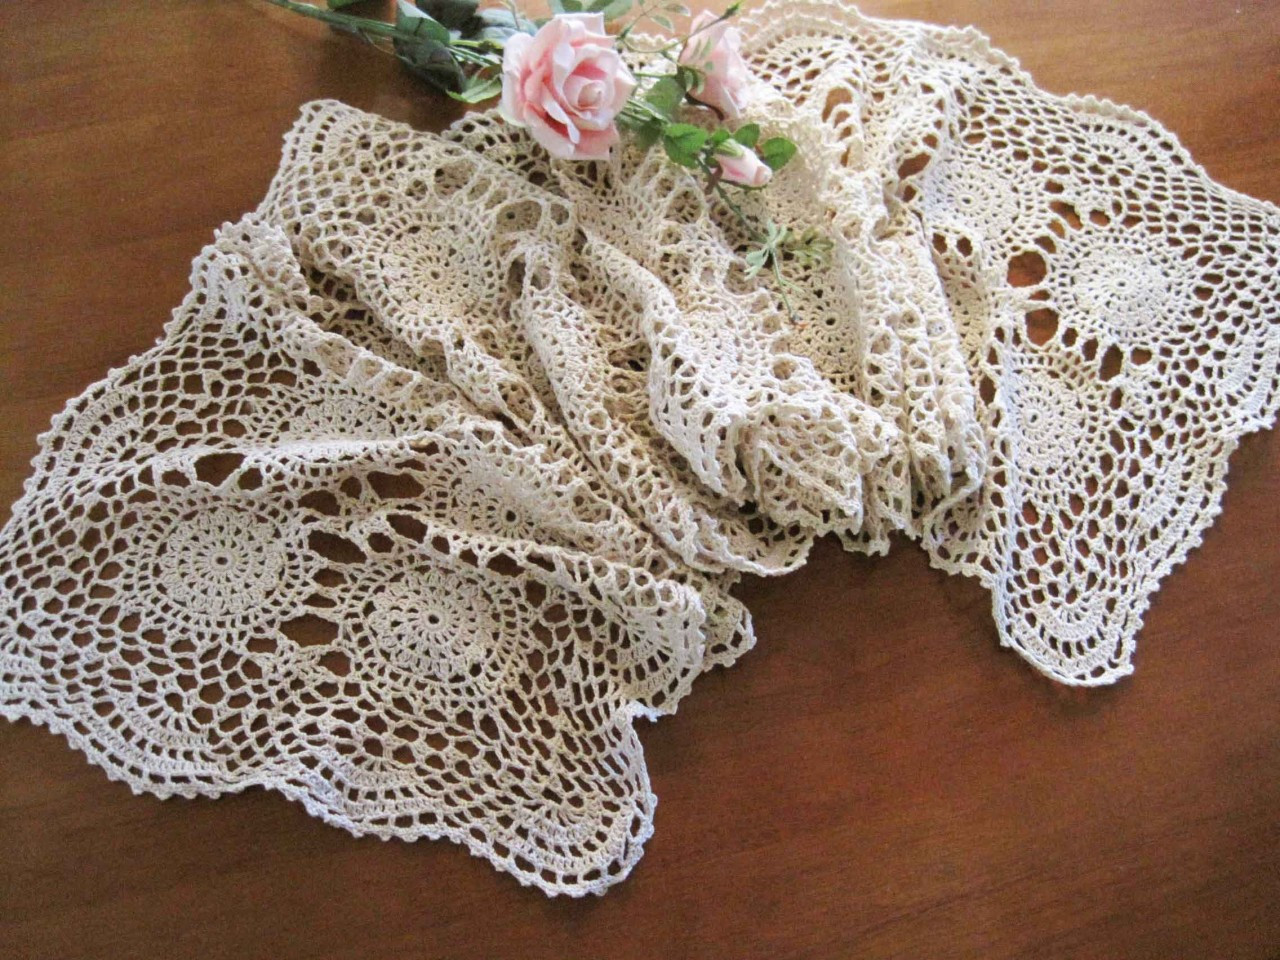 Crochet Runner Awesome Vintage Hand Crochet Lace Cotton Table Runner Ecru 180cm Of Fresh 45 Ideas Crochet Runner